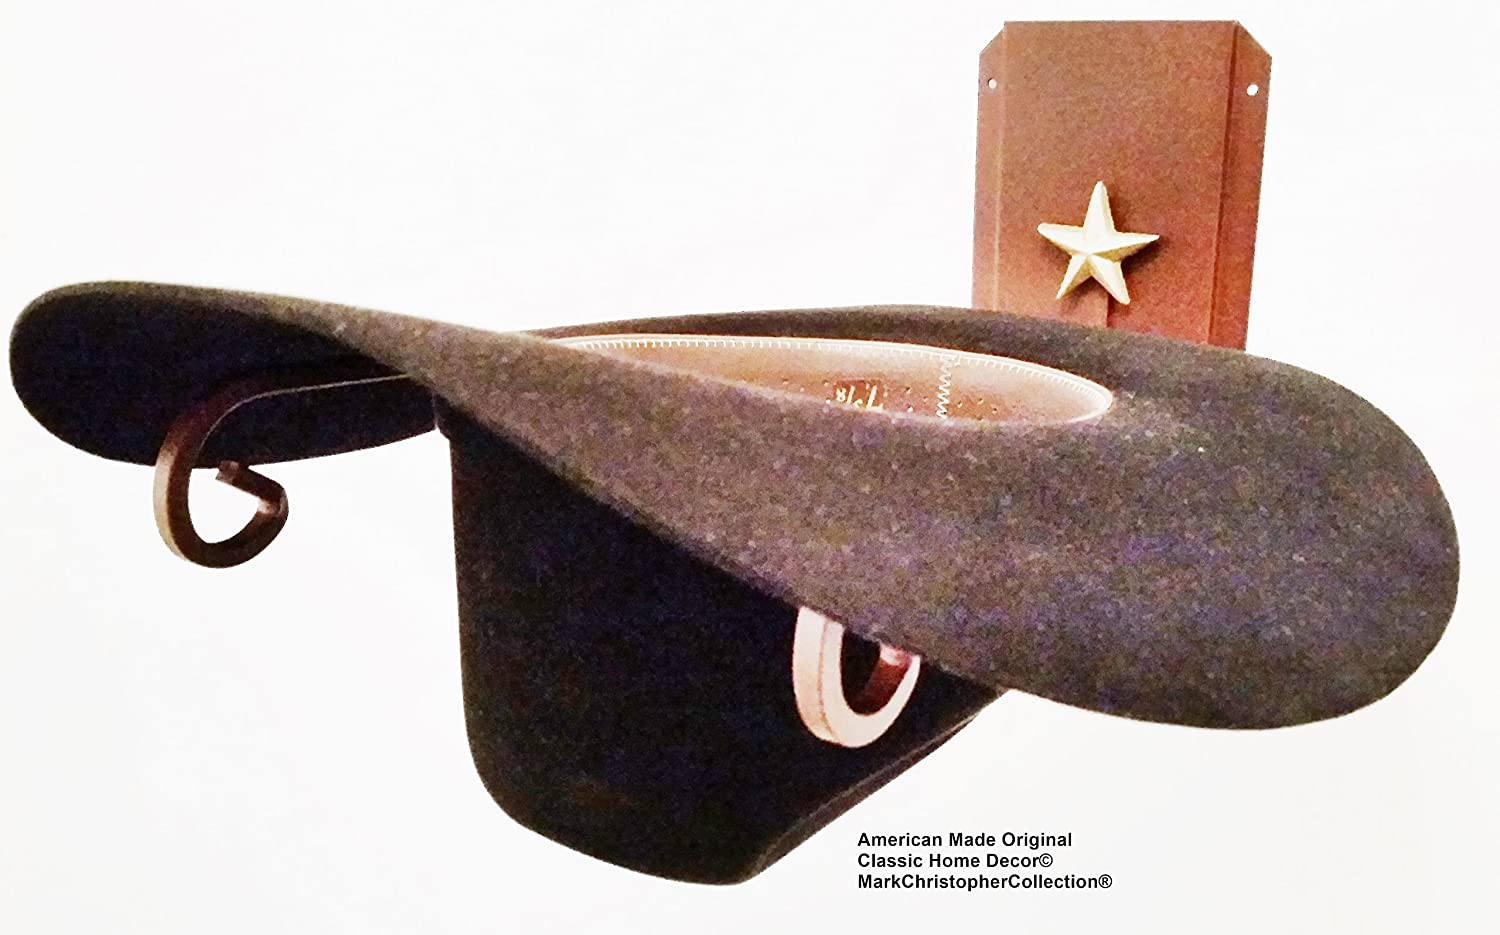 Mark Christopher Collection American Made Cowboy Hat Holder Star 89 CT Classic Home Decor 89 STAR CT